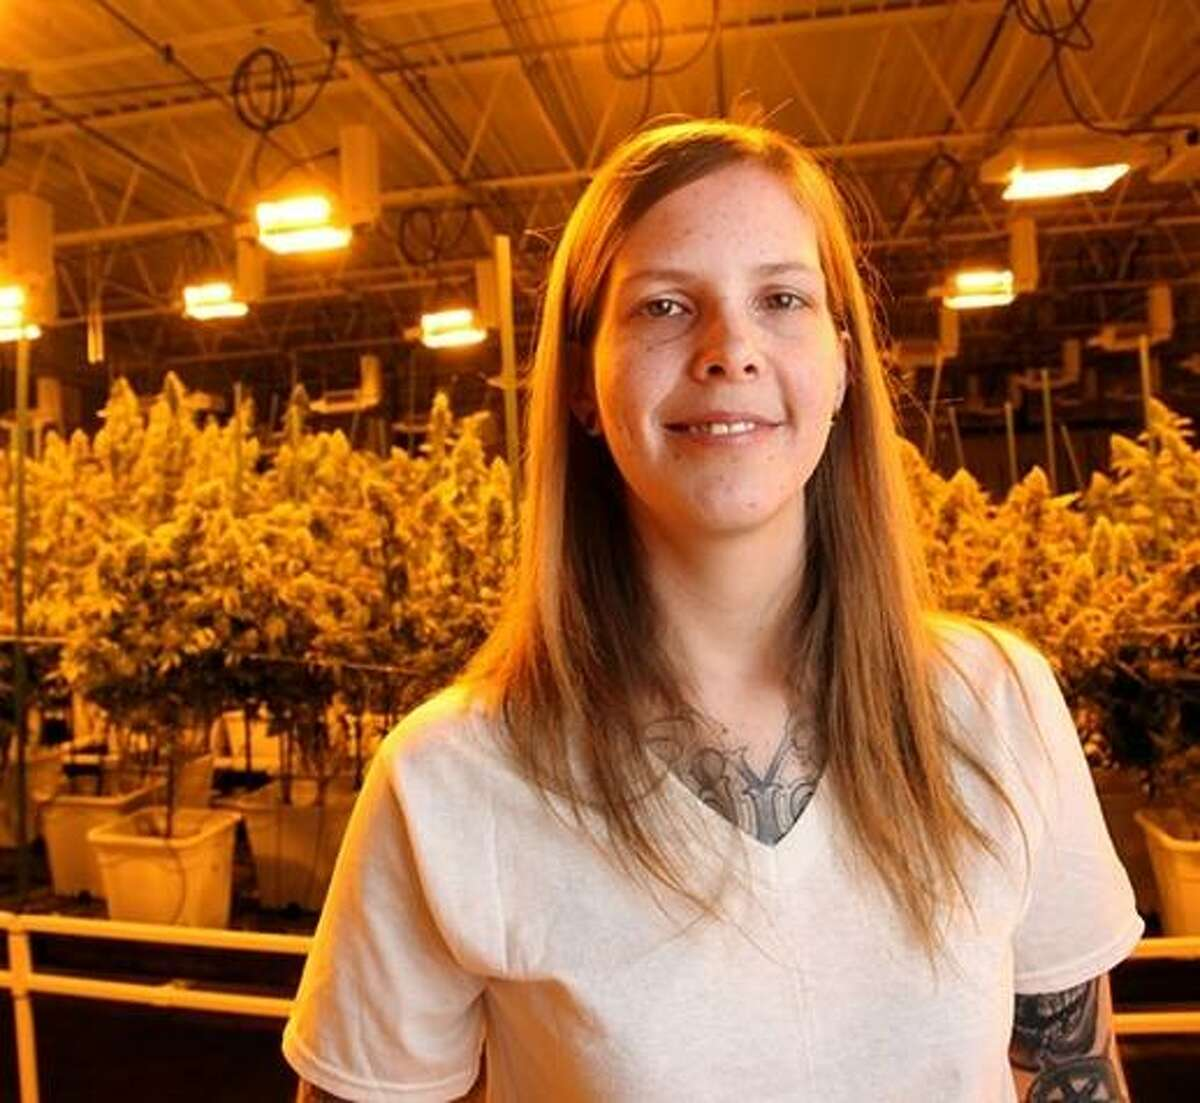 Melanie Brinegar, 32, was acquitted of driving under the influence of marijuana despite elevated levels of THC in her system. California will not base marijuana DUIs on THC levels because there has been no scientific consensus on a correlation between THC levels and driver impairment.